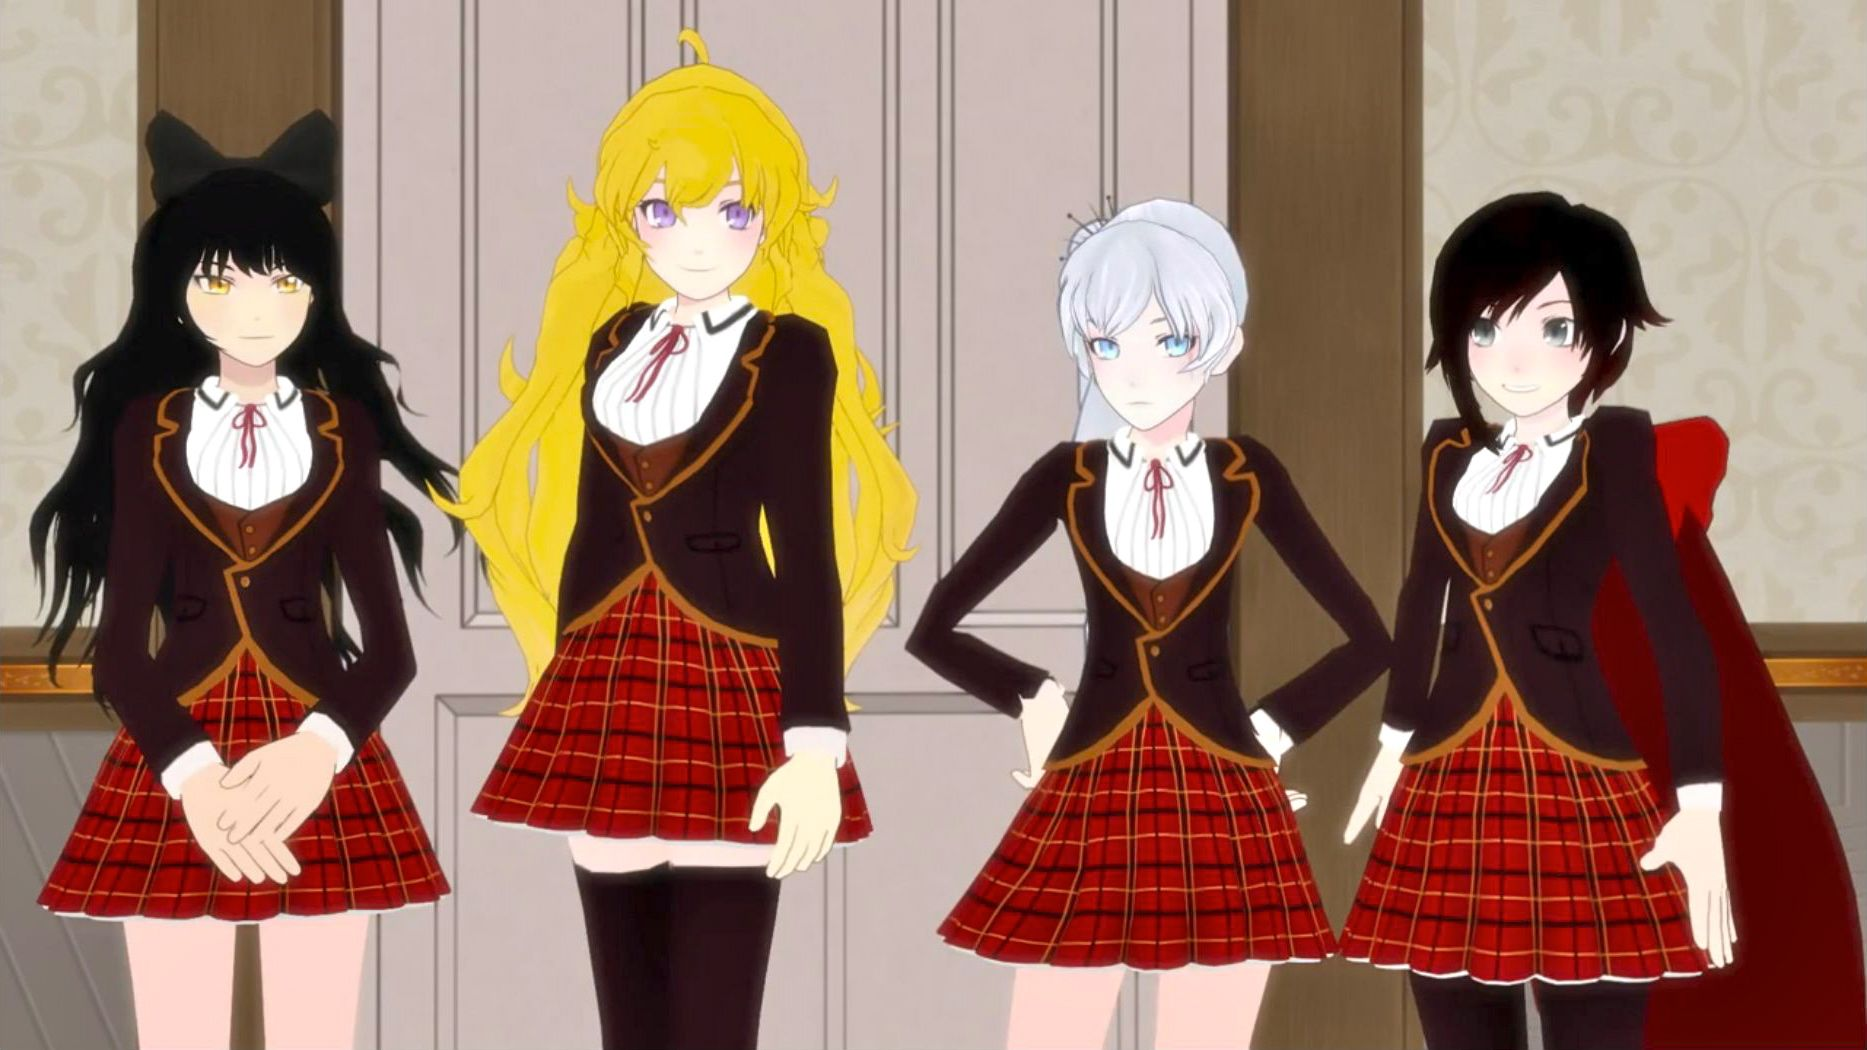 Team Rwby In School Uniform I D Go For Yang Or Ruby Since